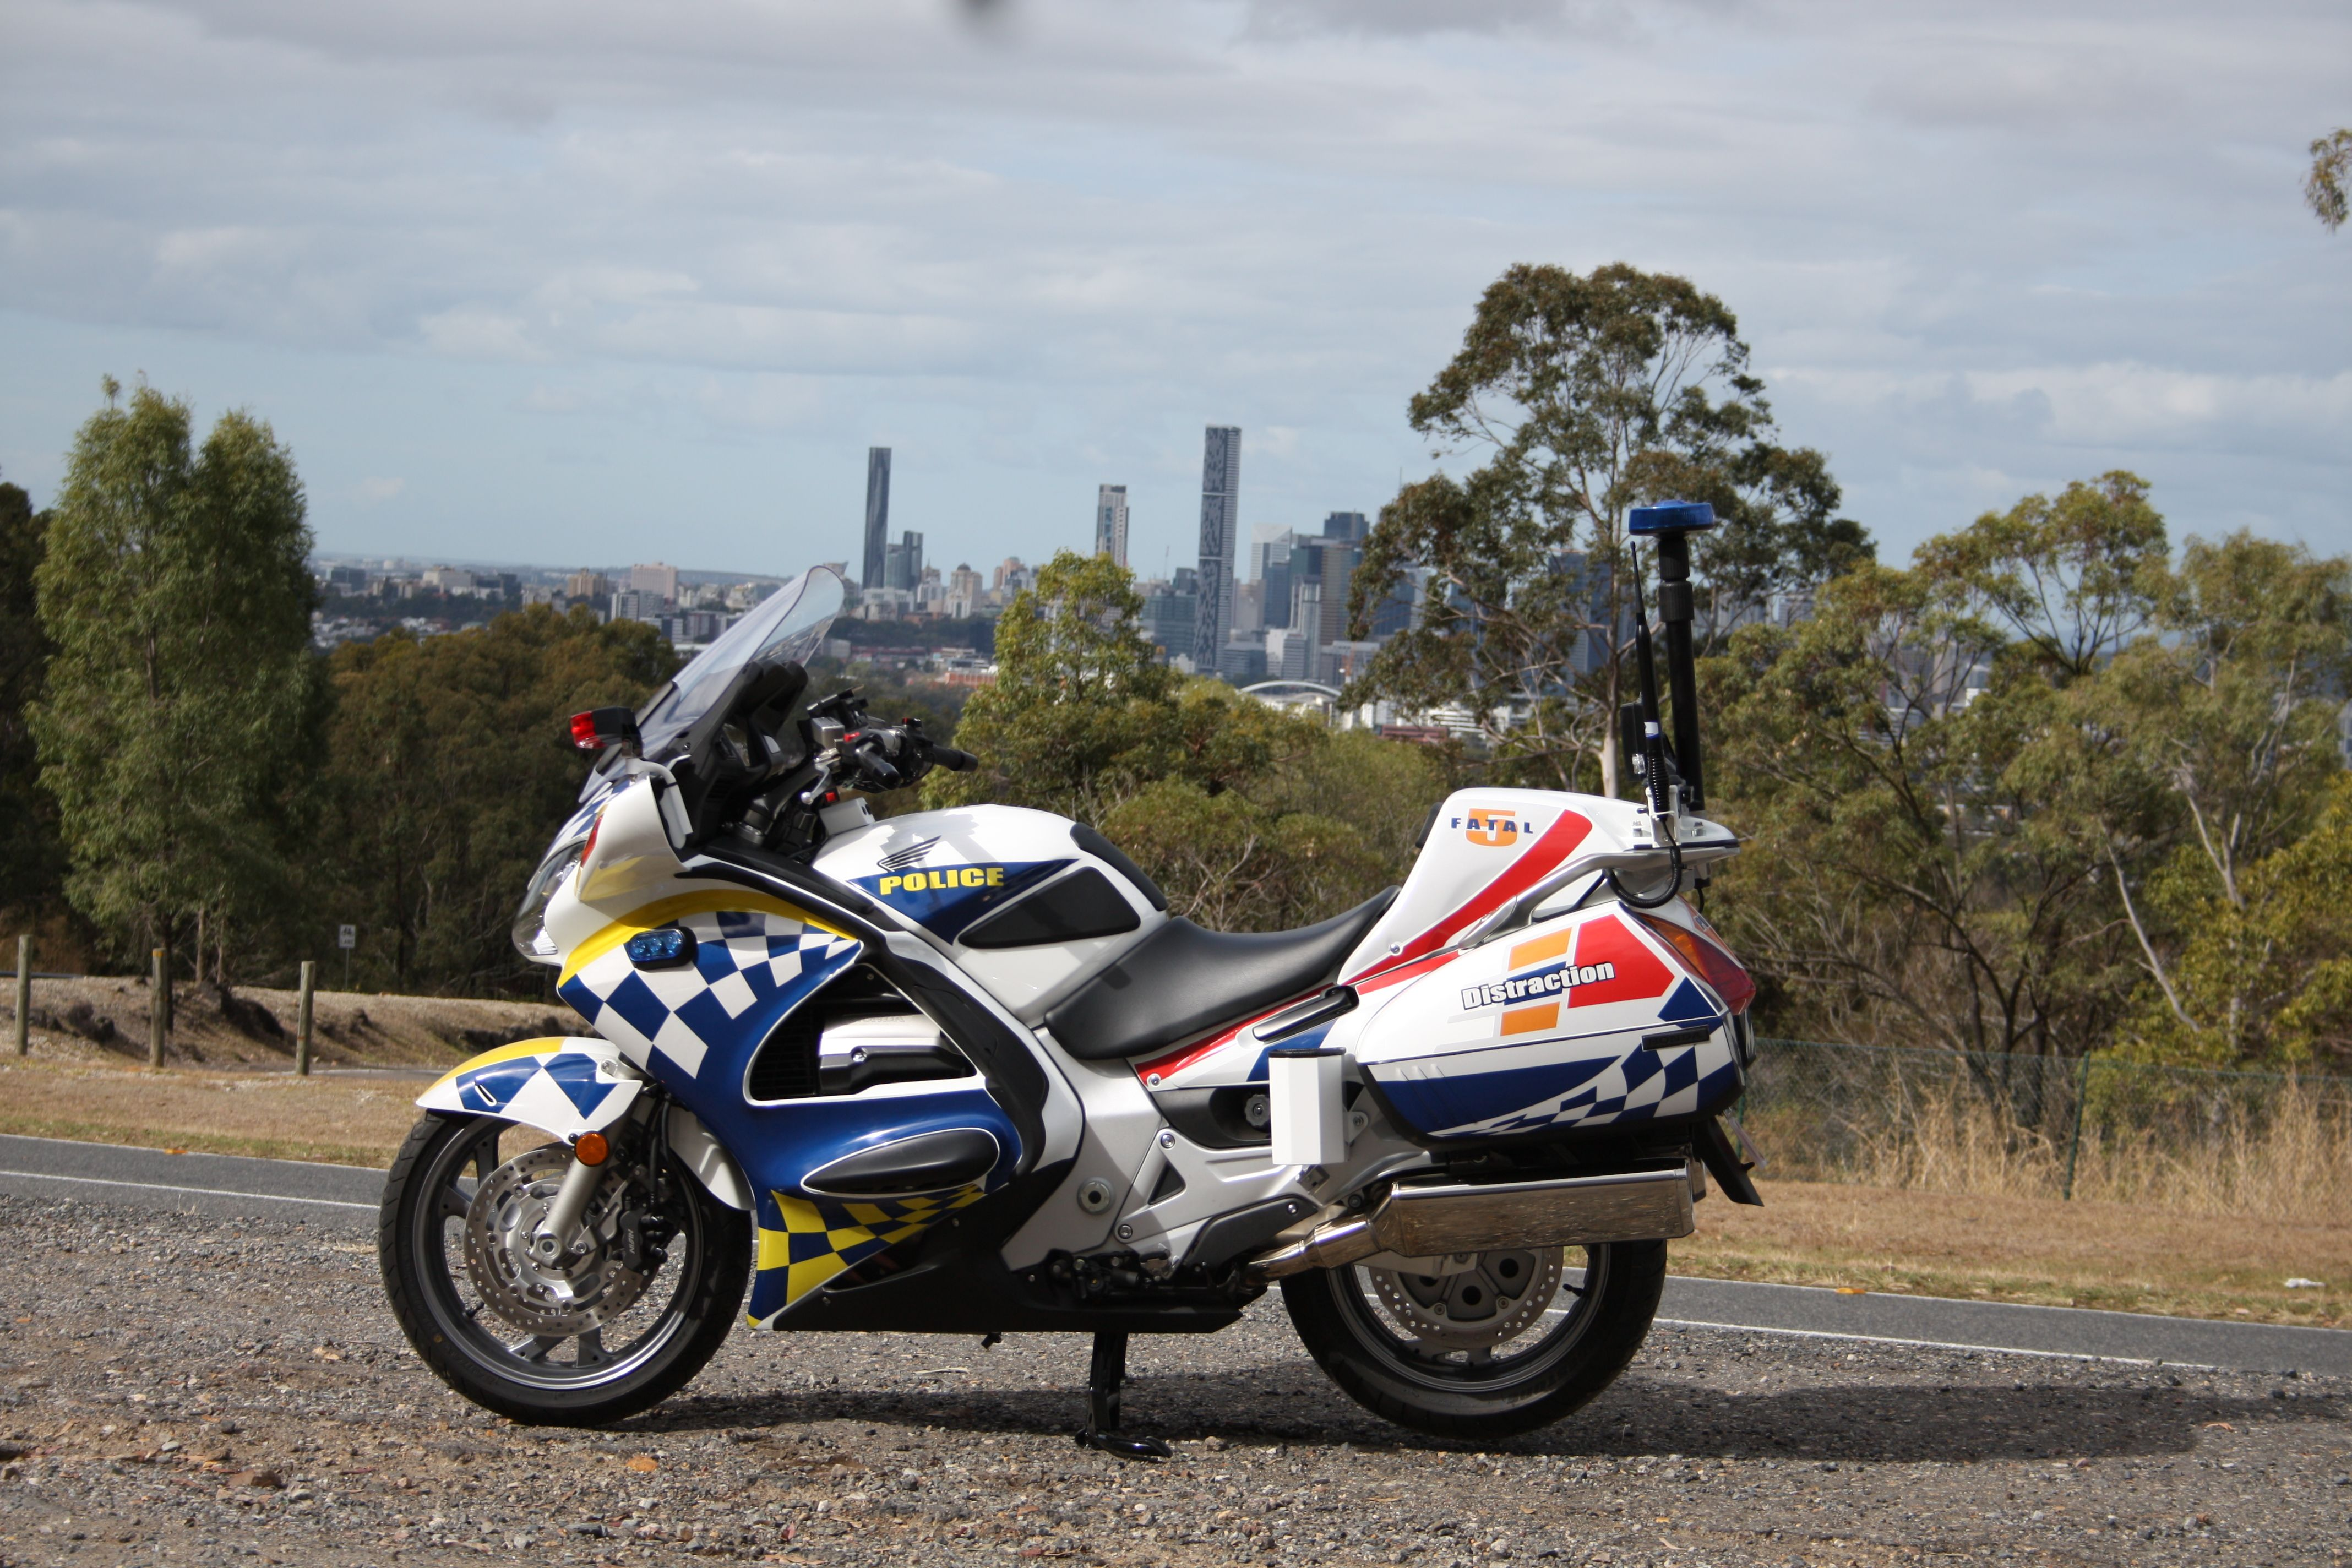 Police - QLD - Australia (With images) | Police cars ...